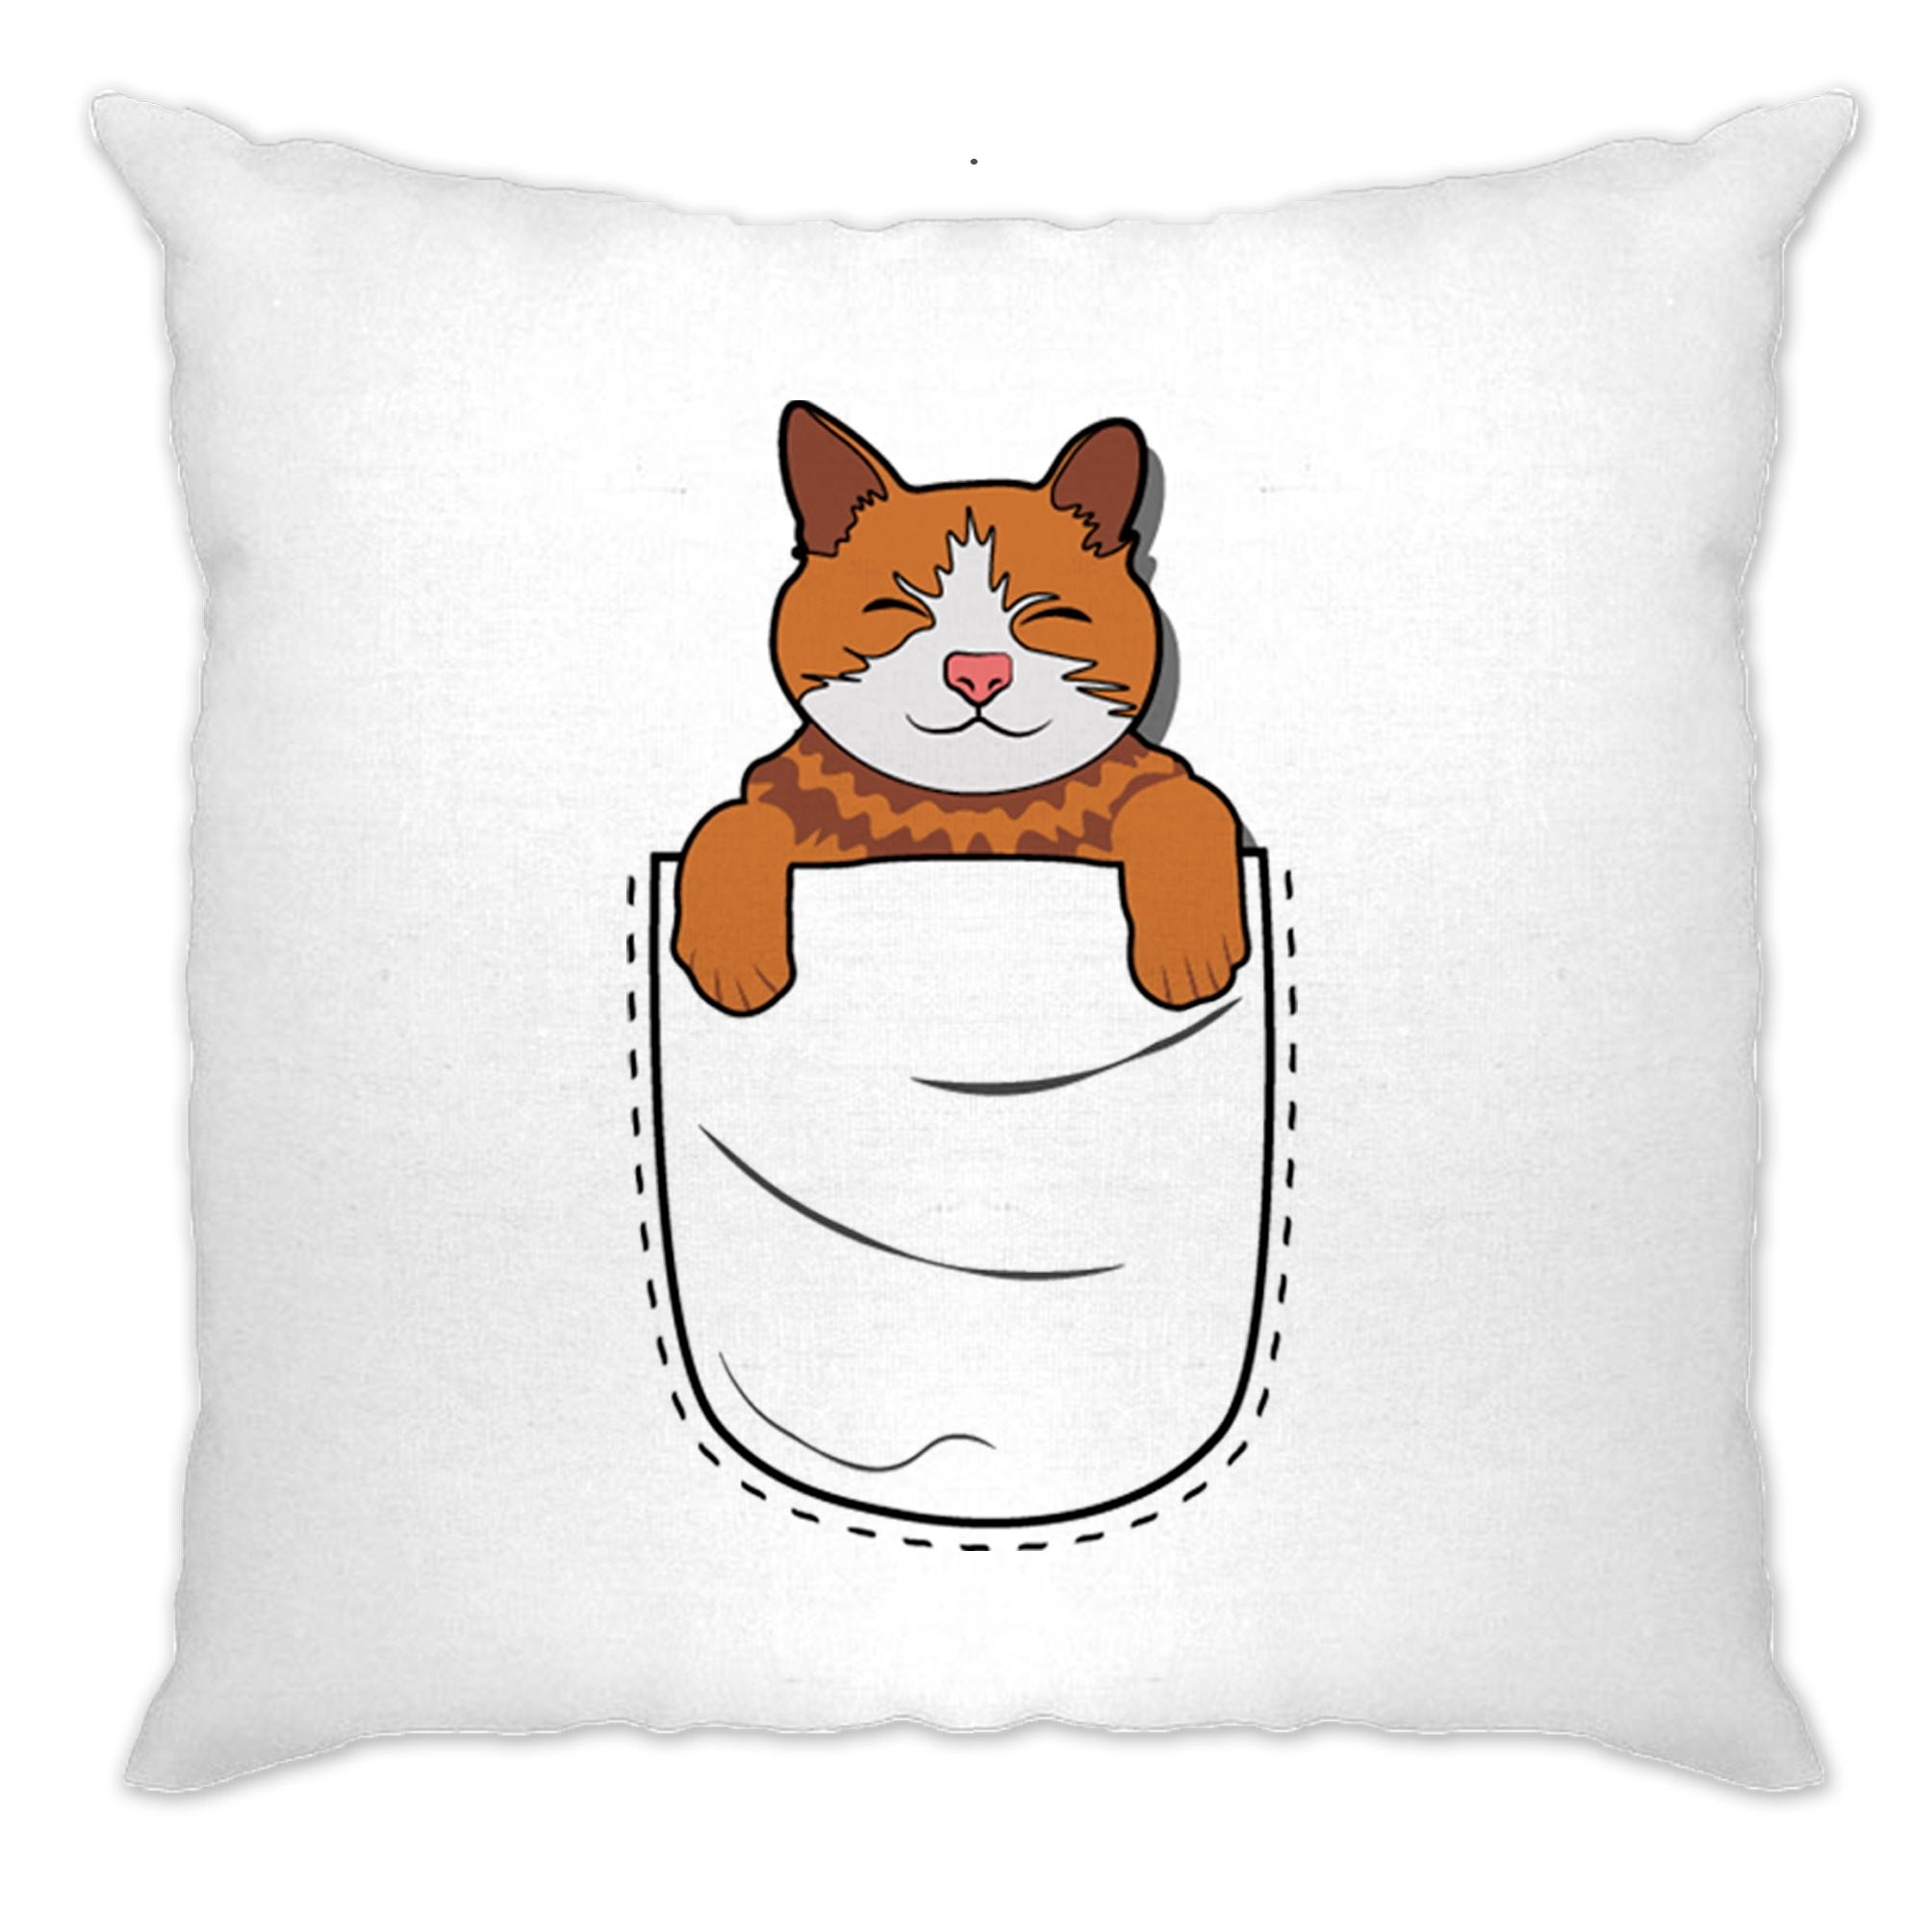 Funny Cute Cat Cushion Cover Kitten in Pocket